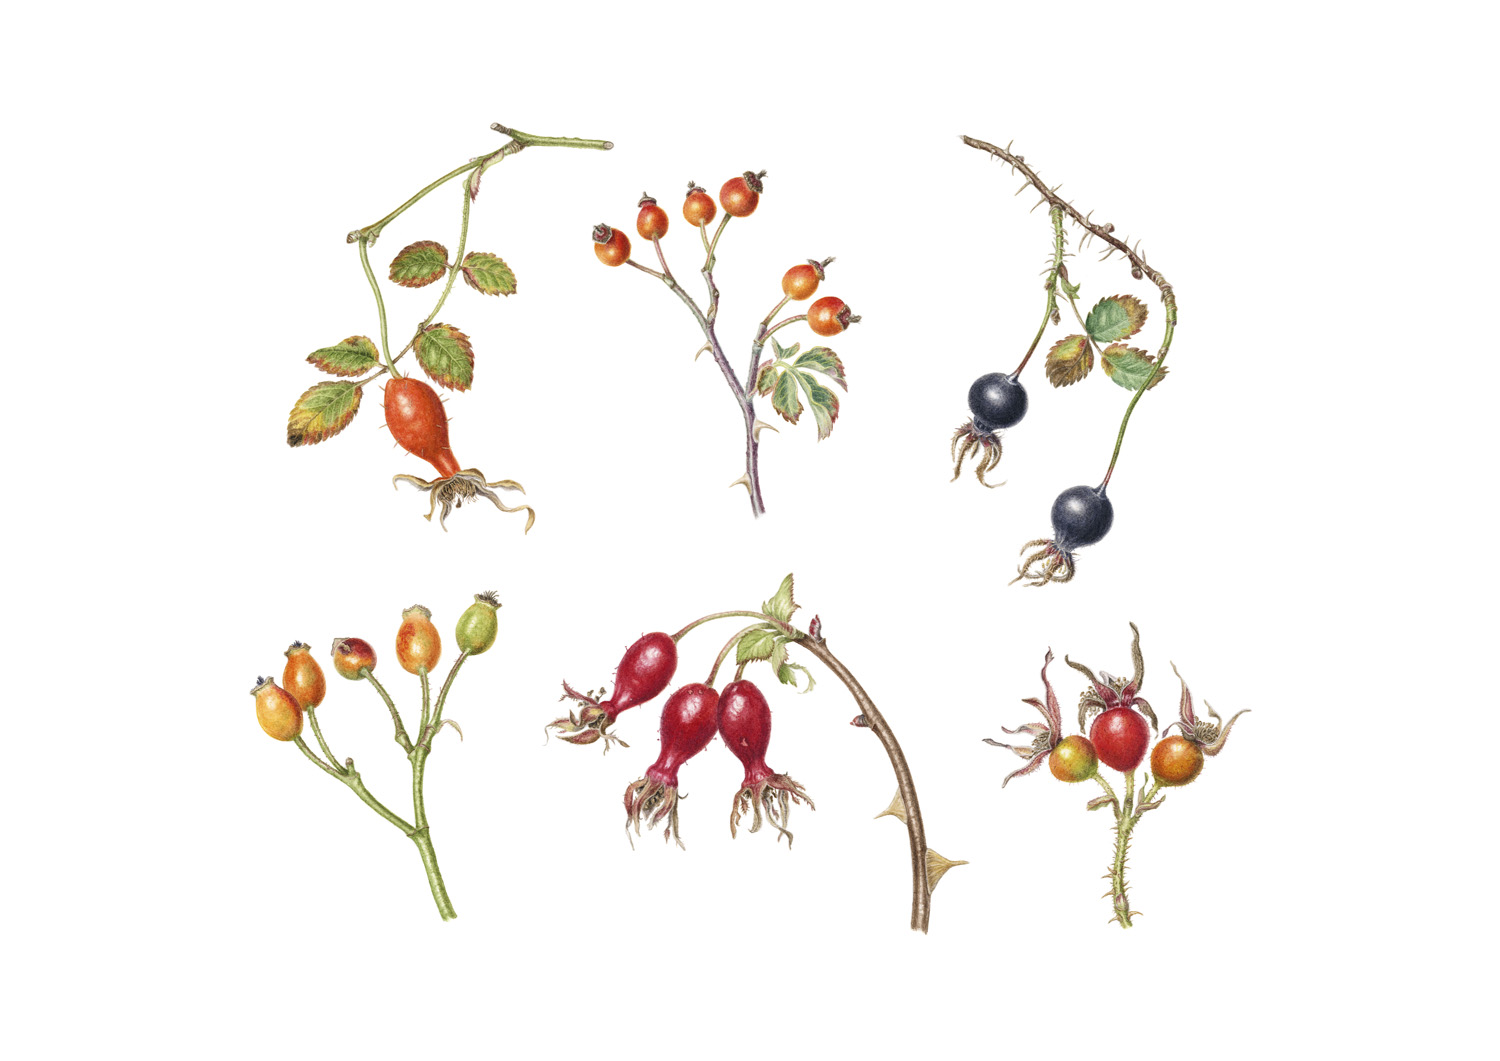 Rose hip compilation